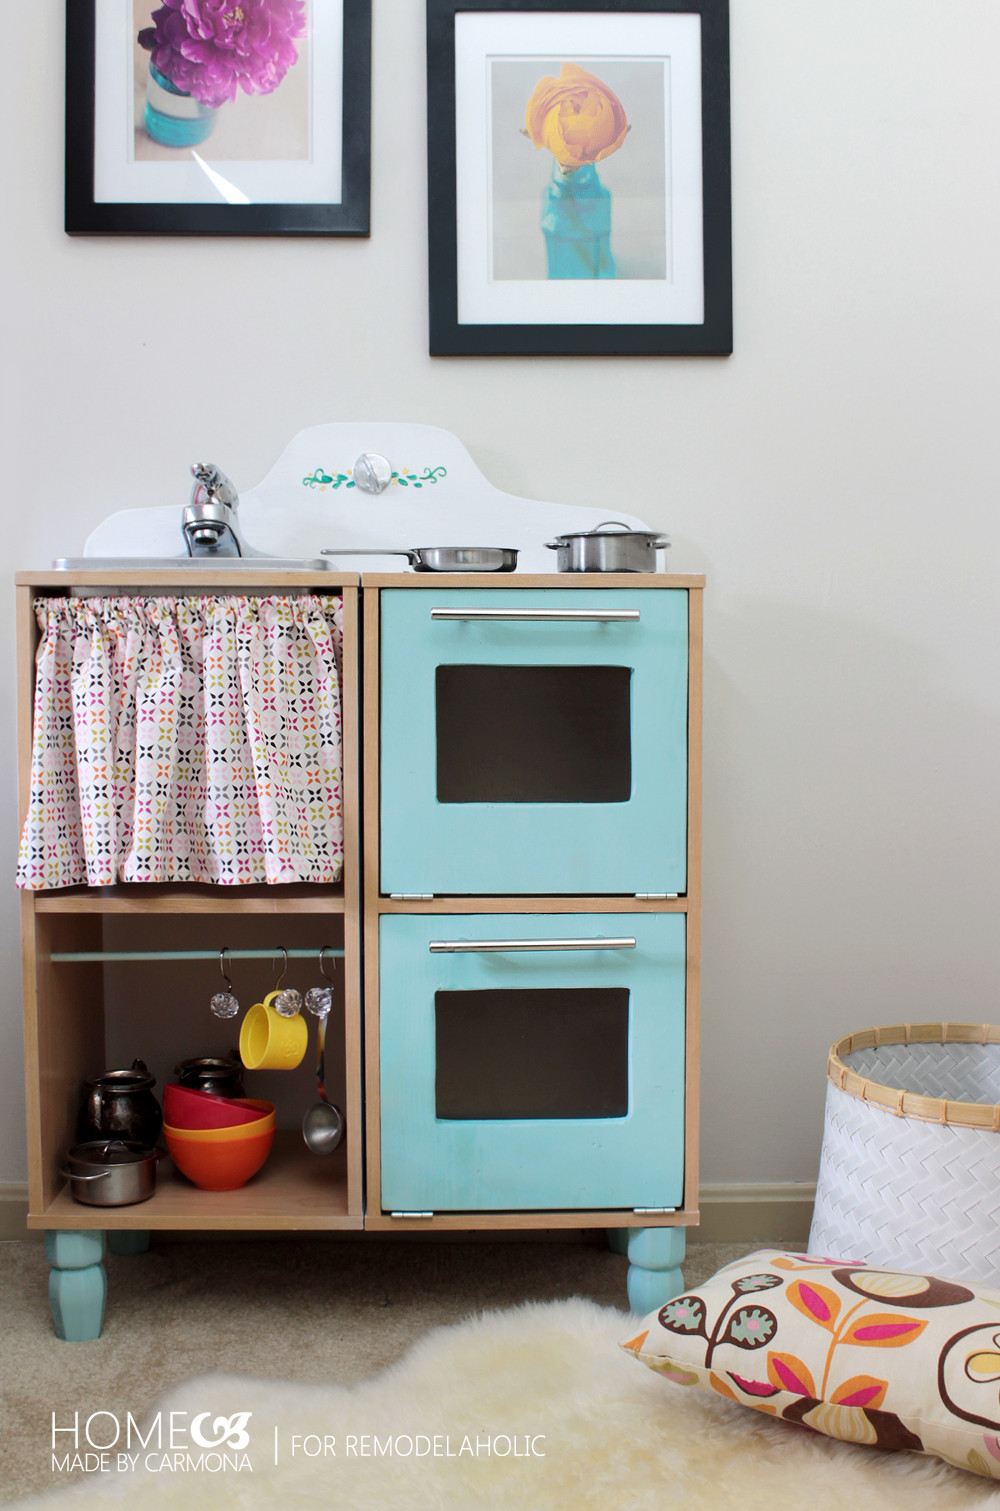 Best ideas about Kids Kitchen DIY . Save or Pin Remodelaholic Now.